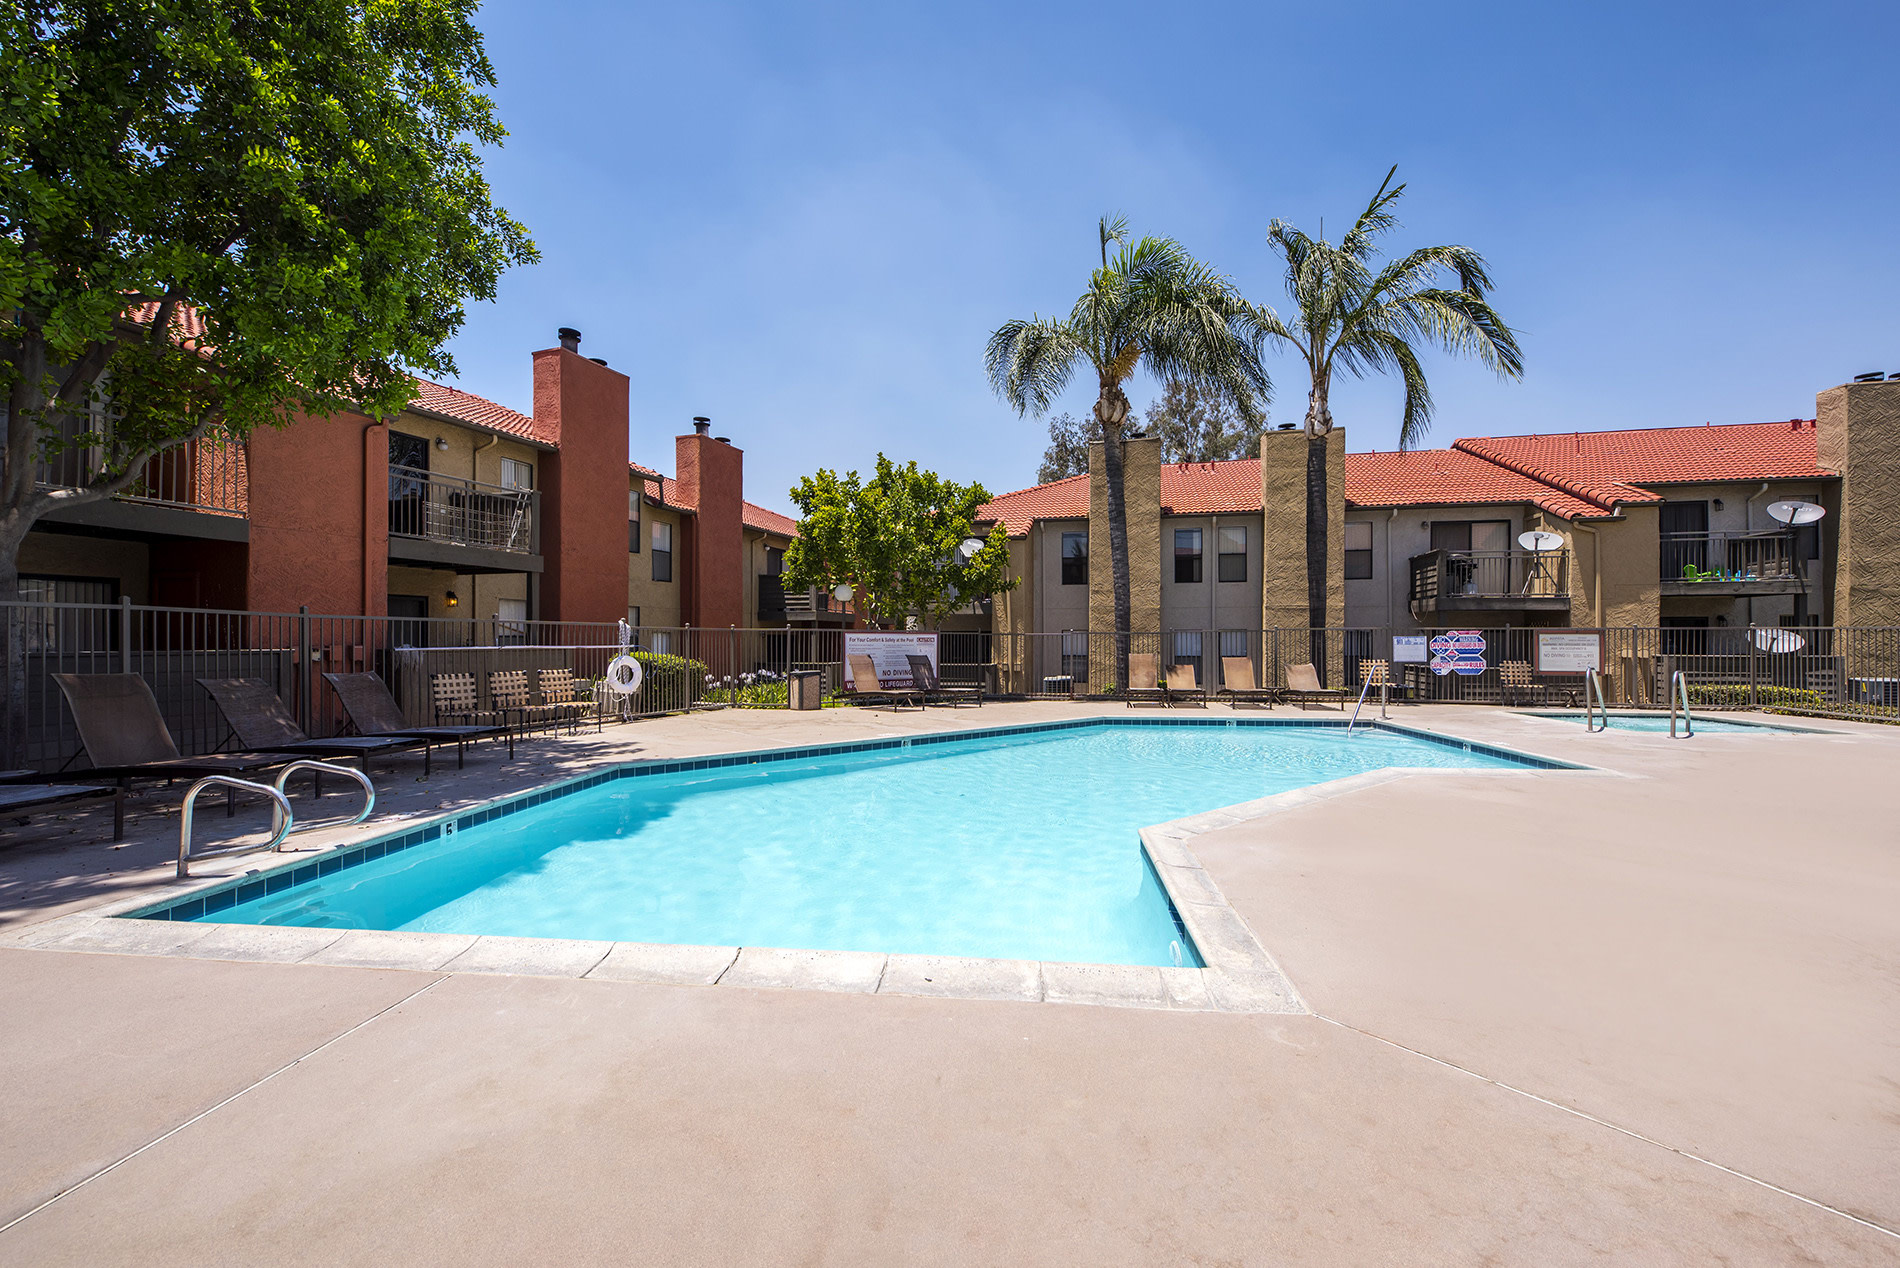 20 Best Apartments In Grand Terrace, CA (with pictures)!